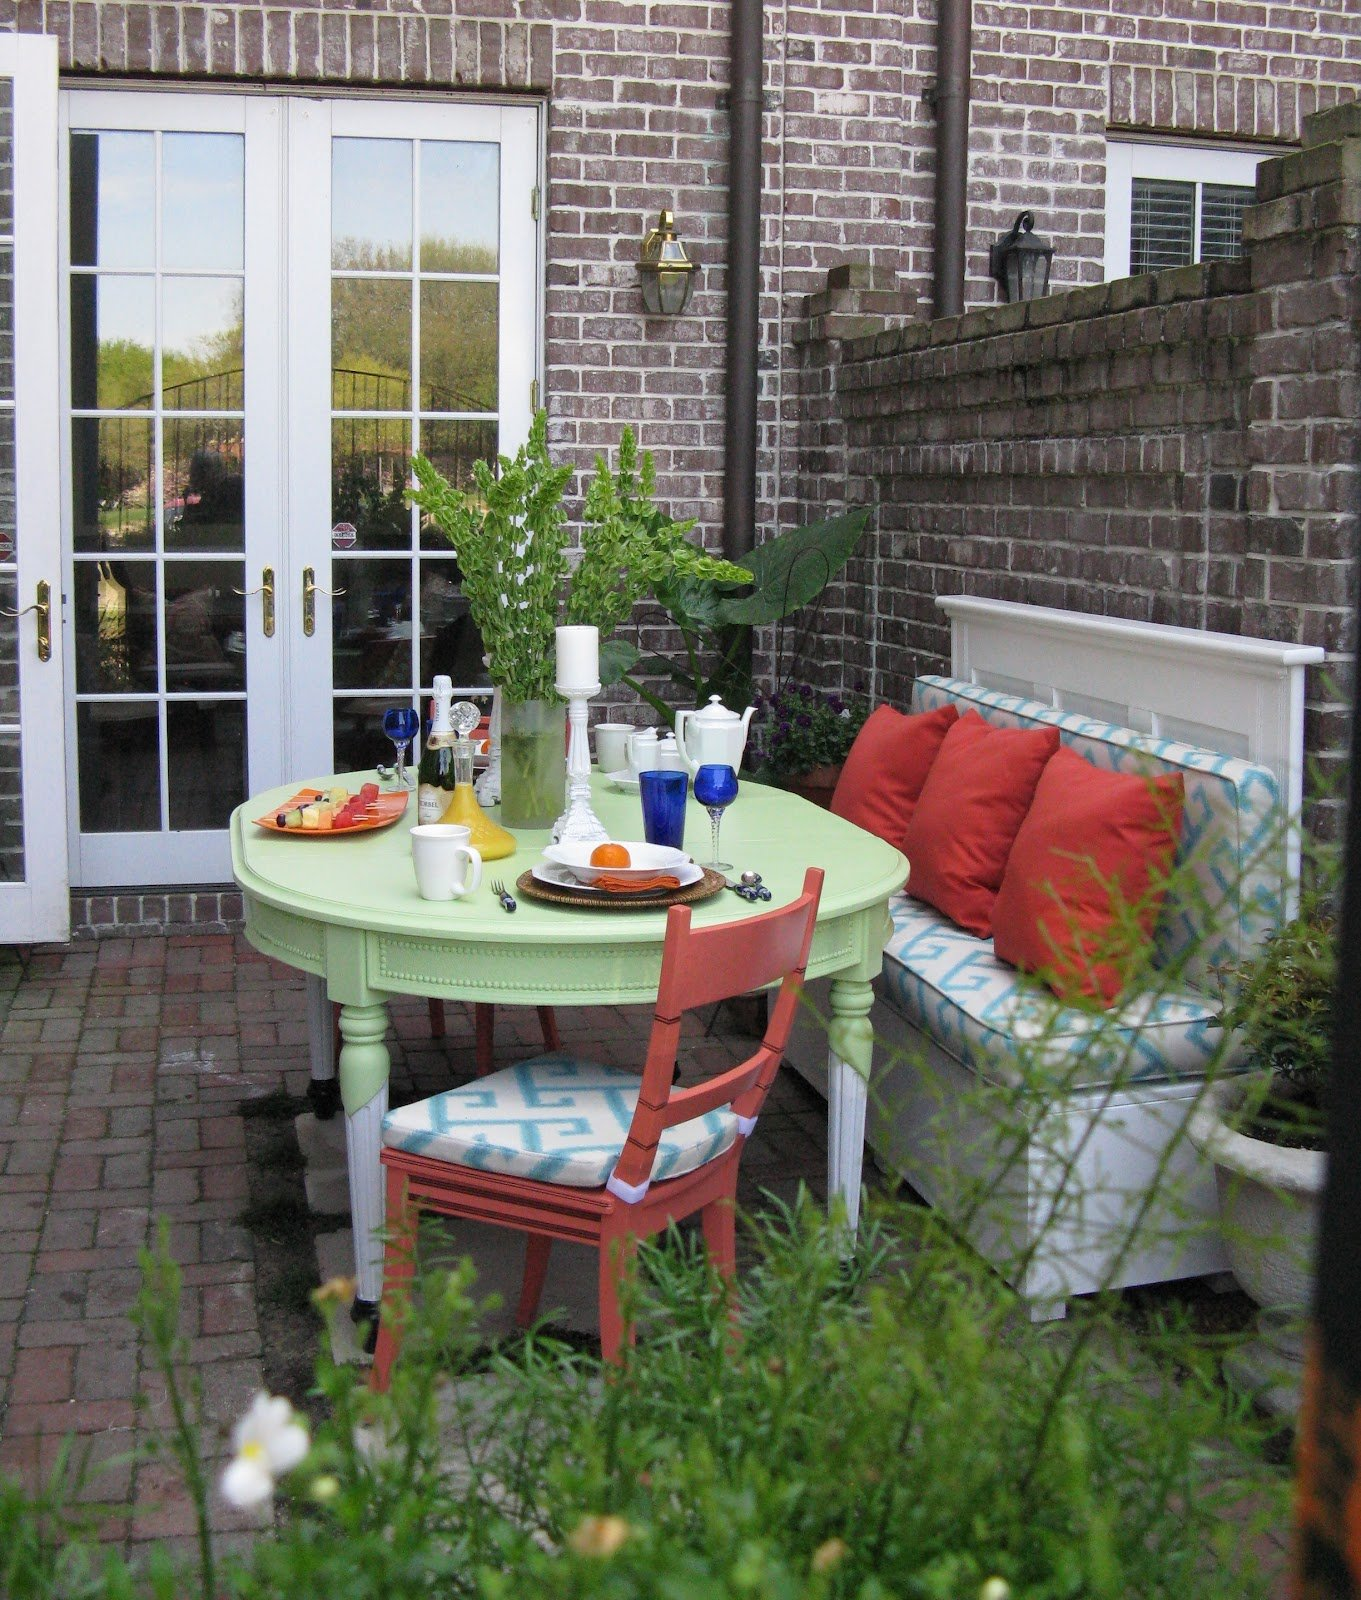 Small outdoor patio decorating ideas - City Garden Patio Livable Landscapes Wyndmoor Pa Small Small Patio Decorating Ideas